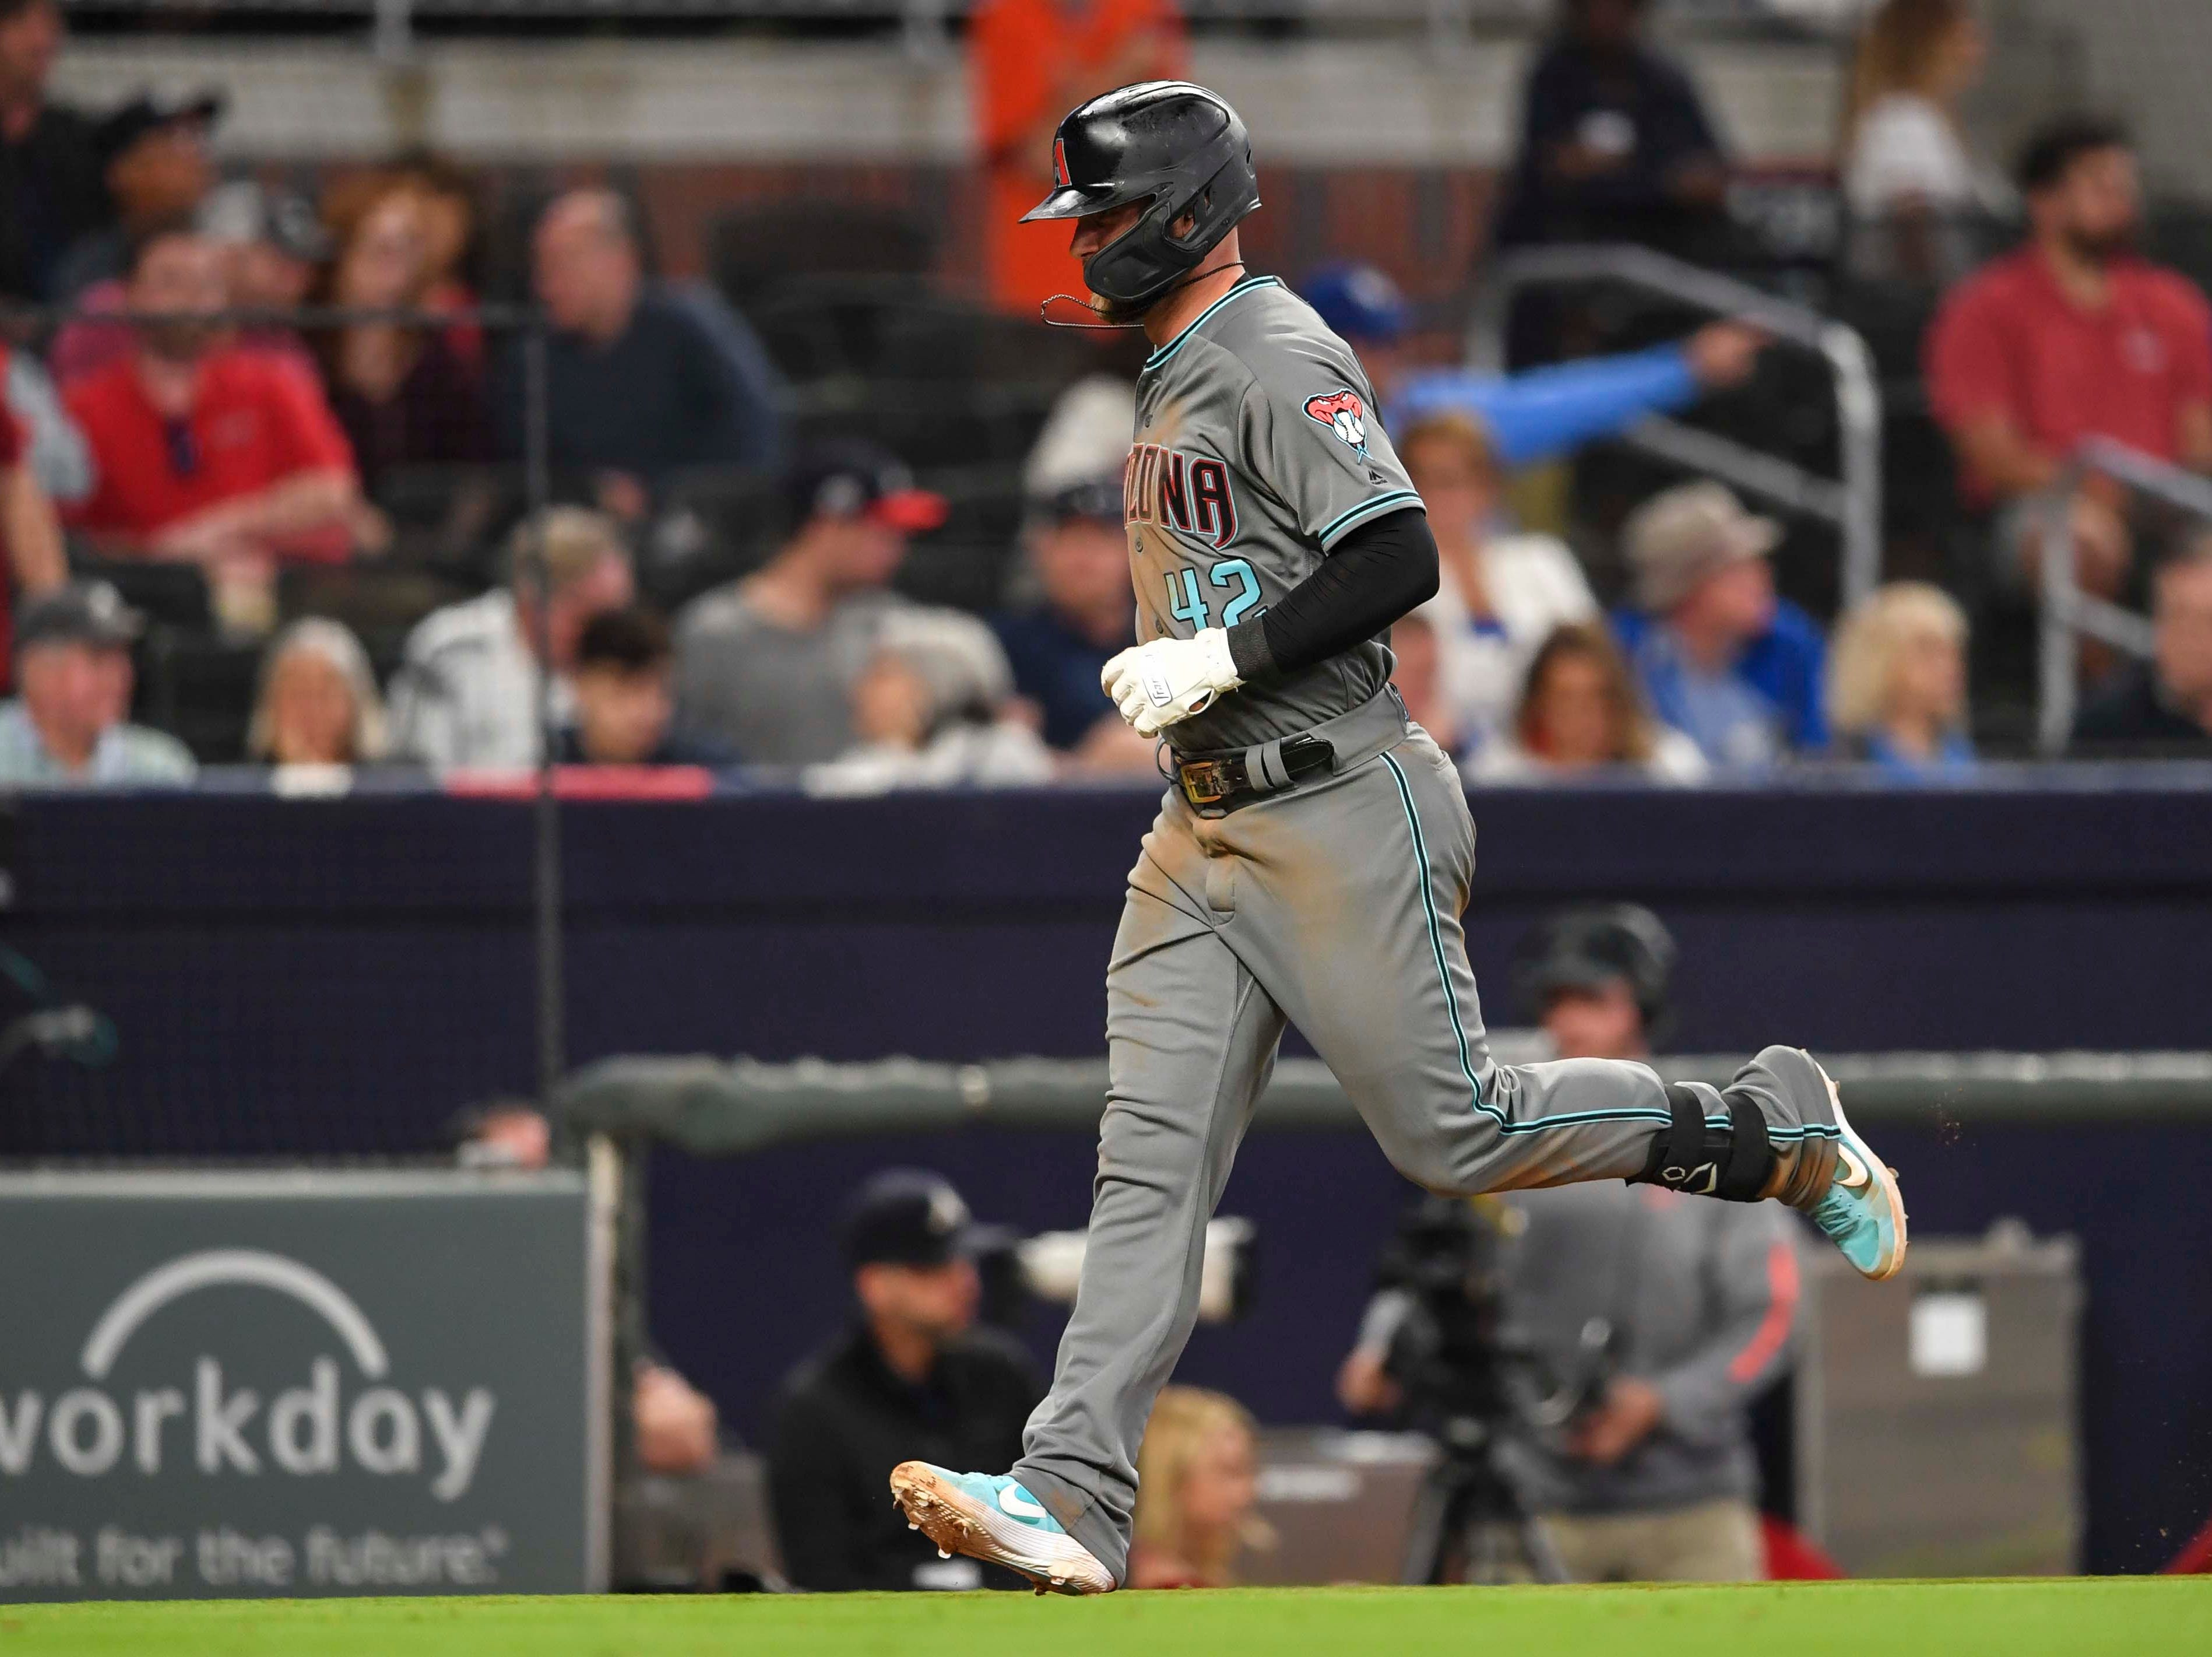 Apr 16, 2019; Atlanta, GA, USA; Arizona Diamondbacks first baseman Christian Walker (53) runs home after hitting a home run against the Atlanta Braves during the ninth inning at SunTrust Park. Mandatory Credit: Dale Zanine-USA TODAY Sports